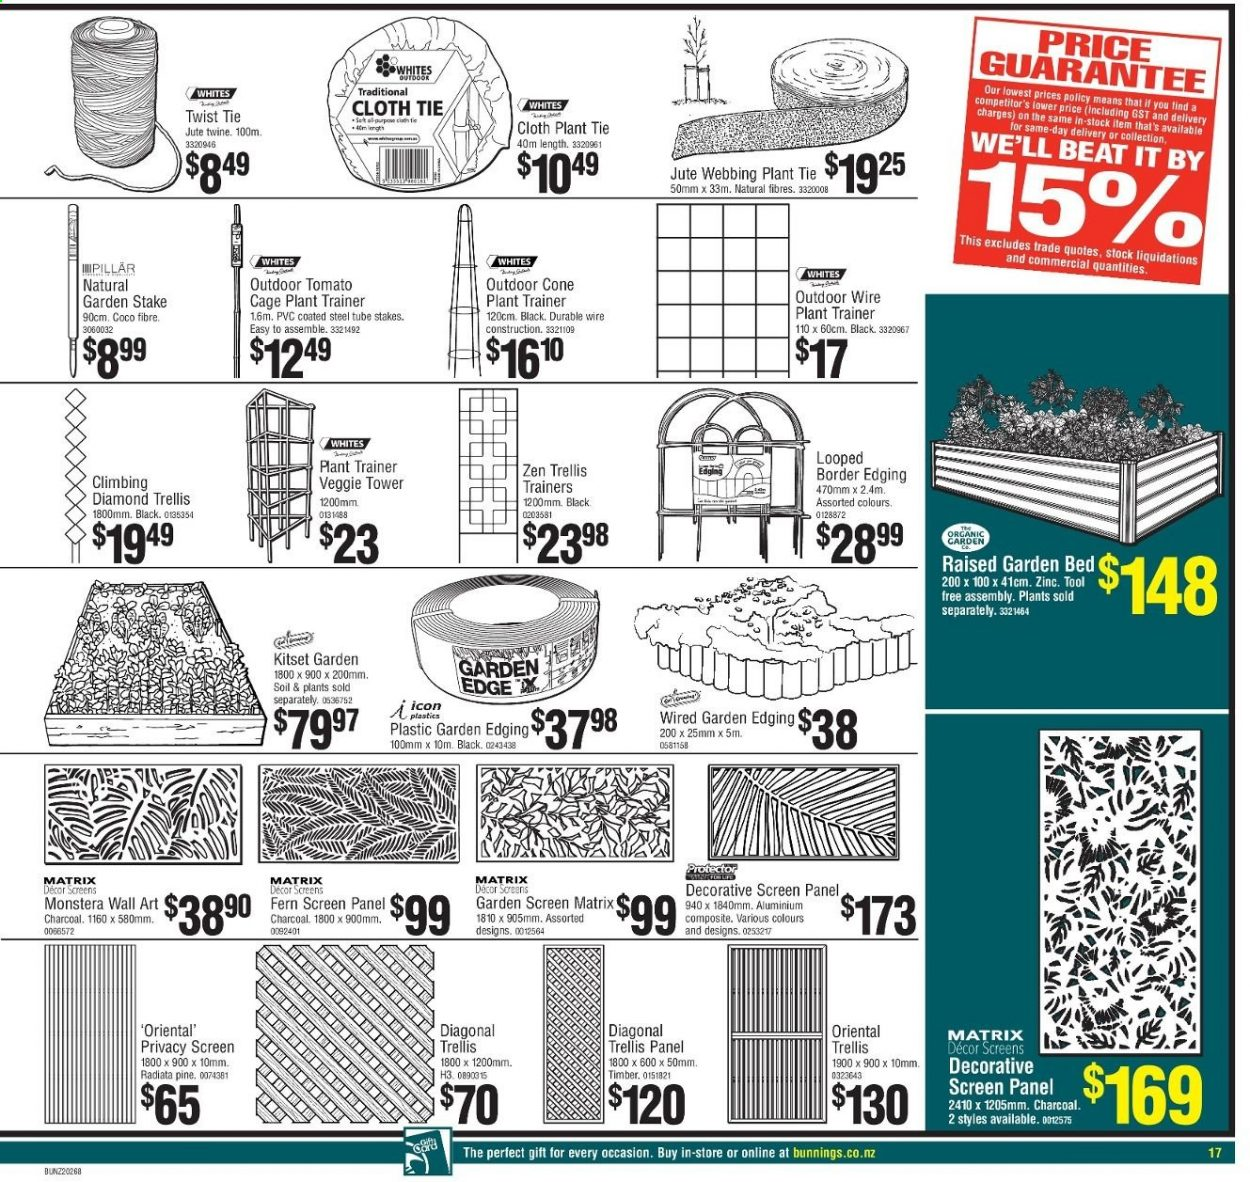 Picture of: Bunnings Warehouse Catalogue 16 09 2020 11 10 2020 Page 16 My Catalogue